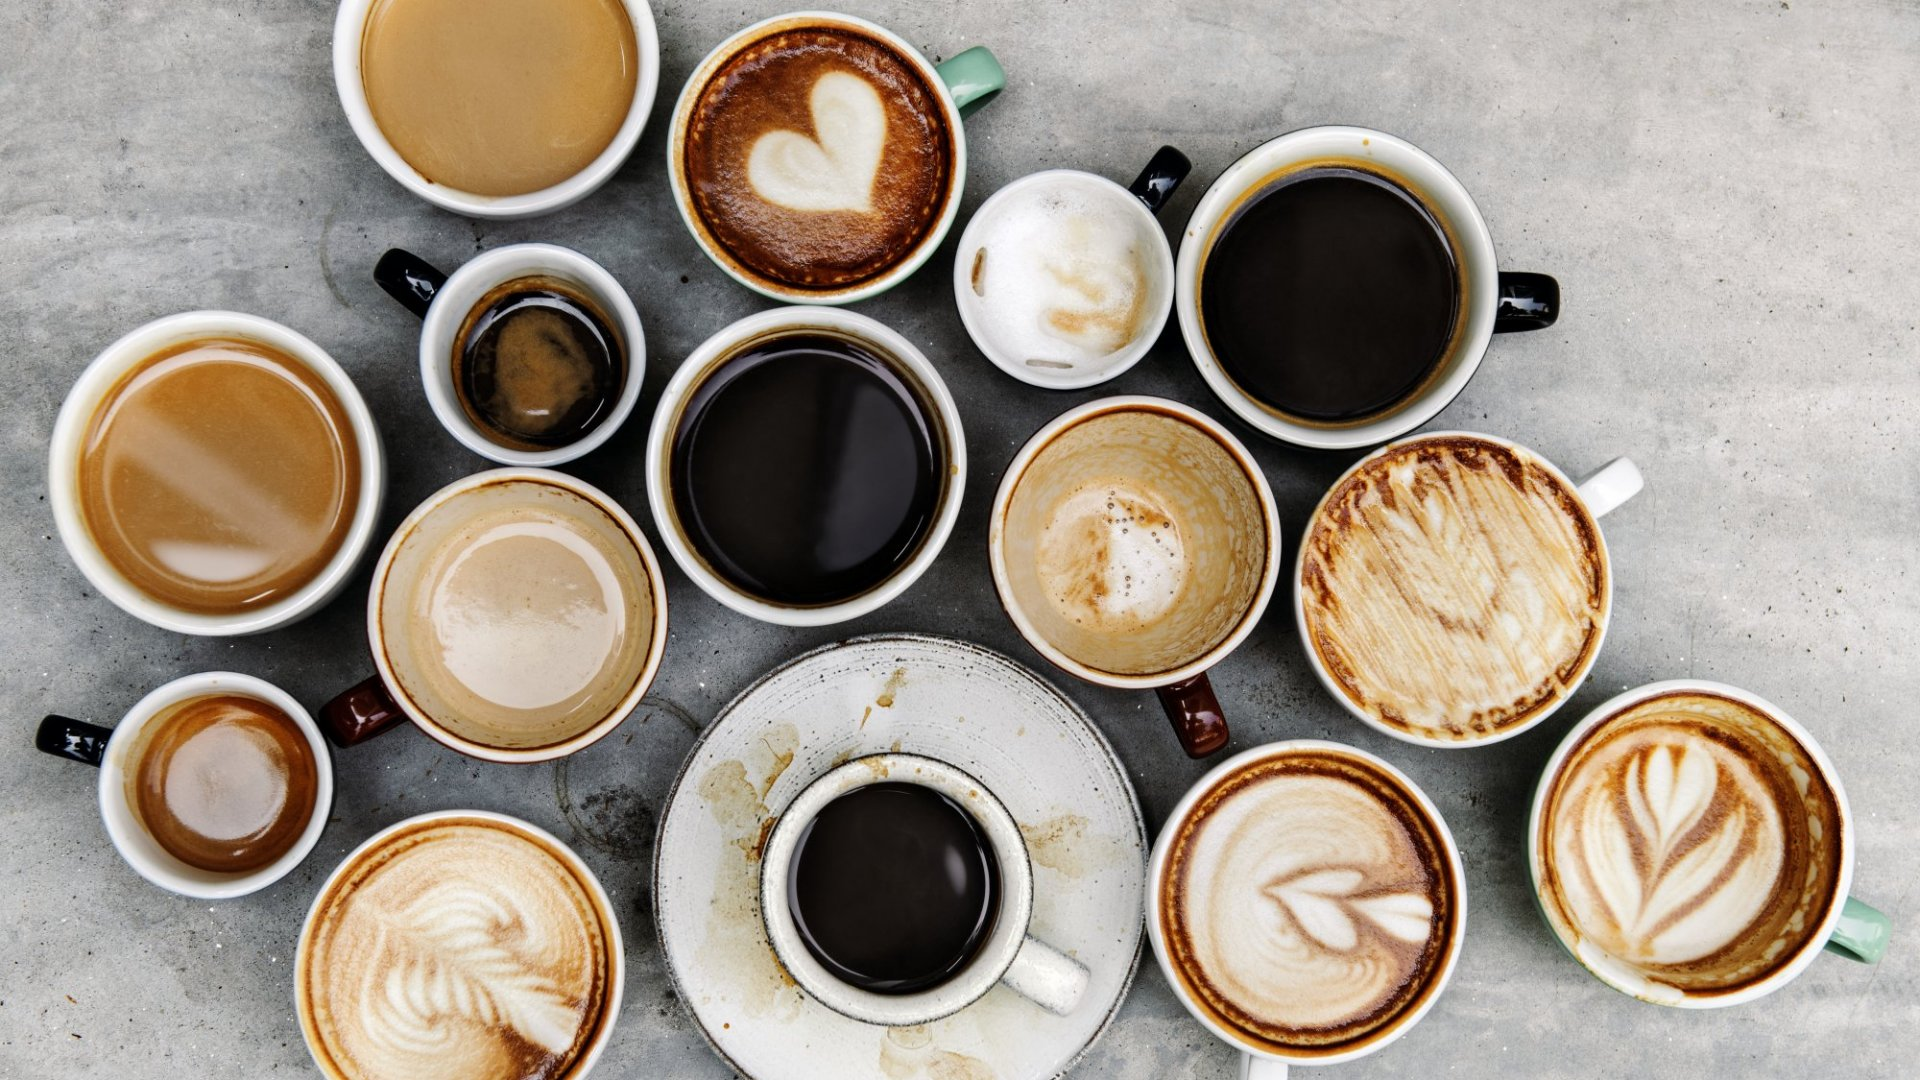 Science Says Drinking Coffee Helps People Slow Aging, Lose Weight, and Cheat Death. These Fascinating Studies Explain Why It's a Miracle Drink